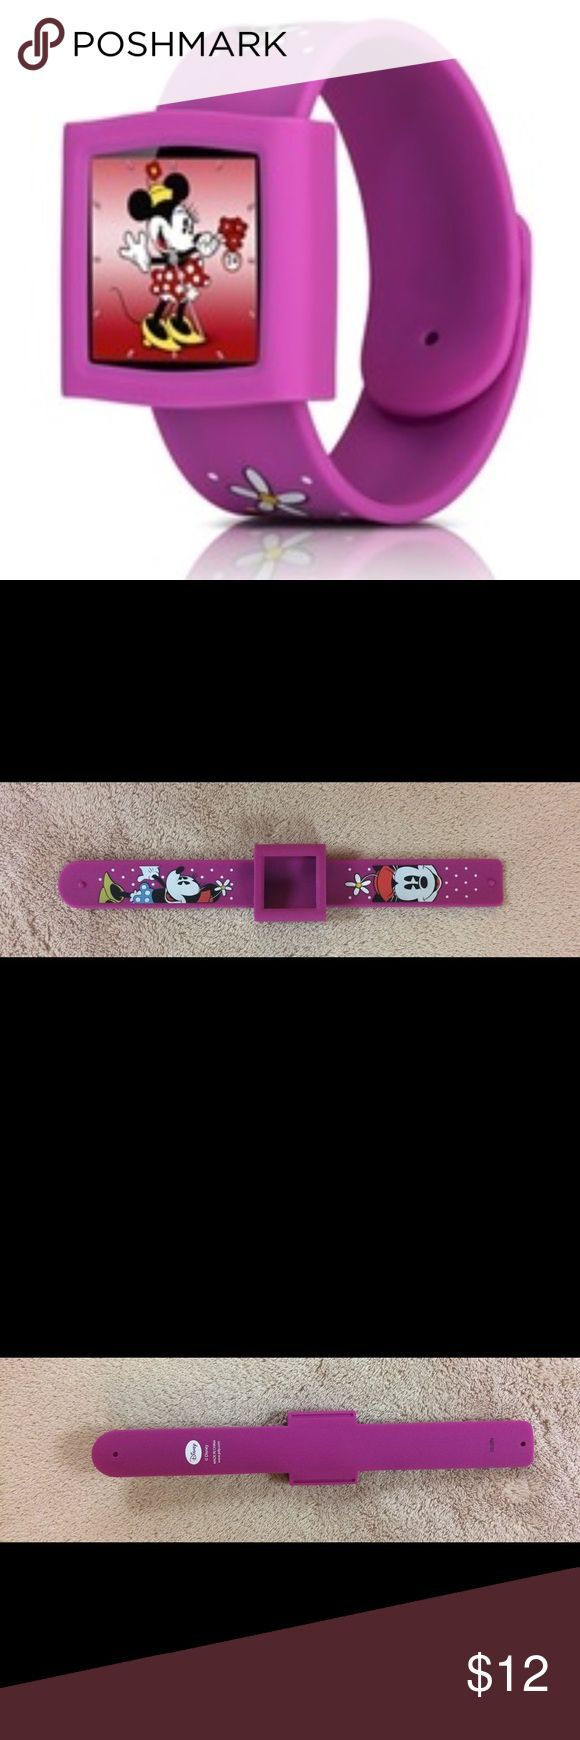 Best Bracelet 2017/ 2018  : iPod Nano Disney Magic Band Used good condition. Length 10. Width 1. Wear your